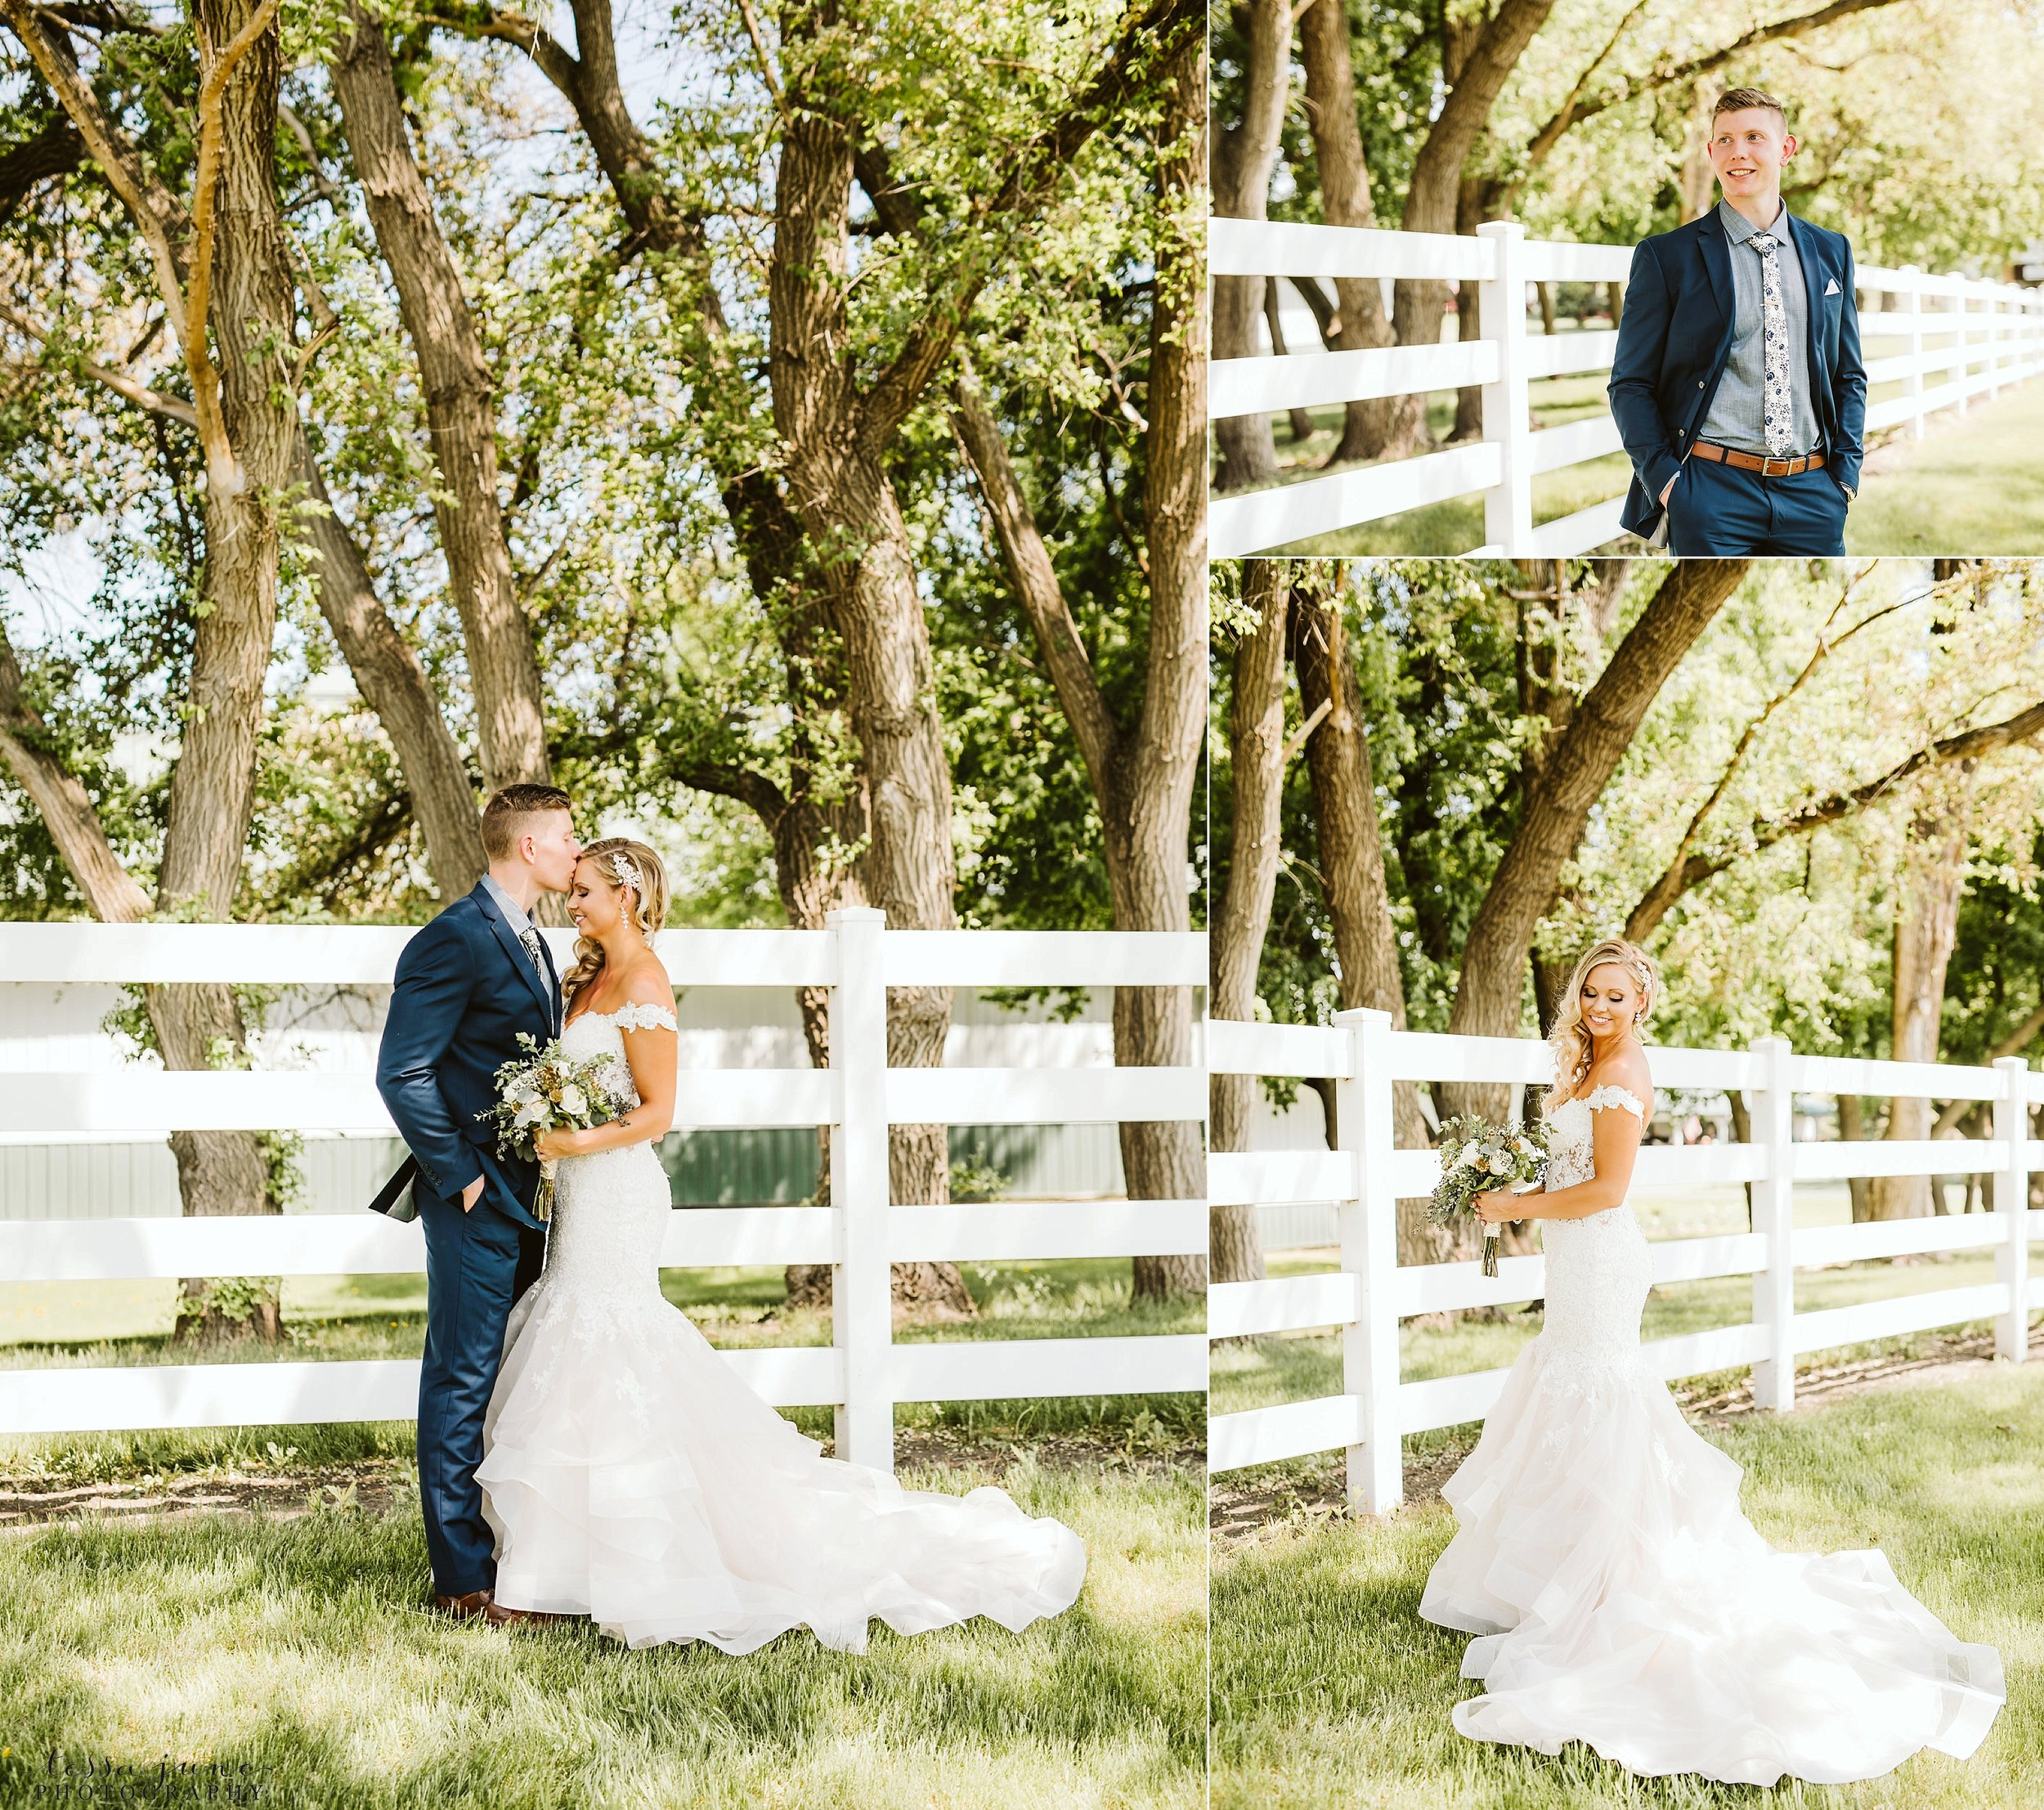 carlos-creek-winery-wedding-alexandria-minnesota-glam-elegant-floral-44.jpg